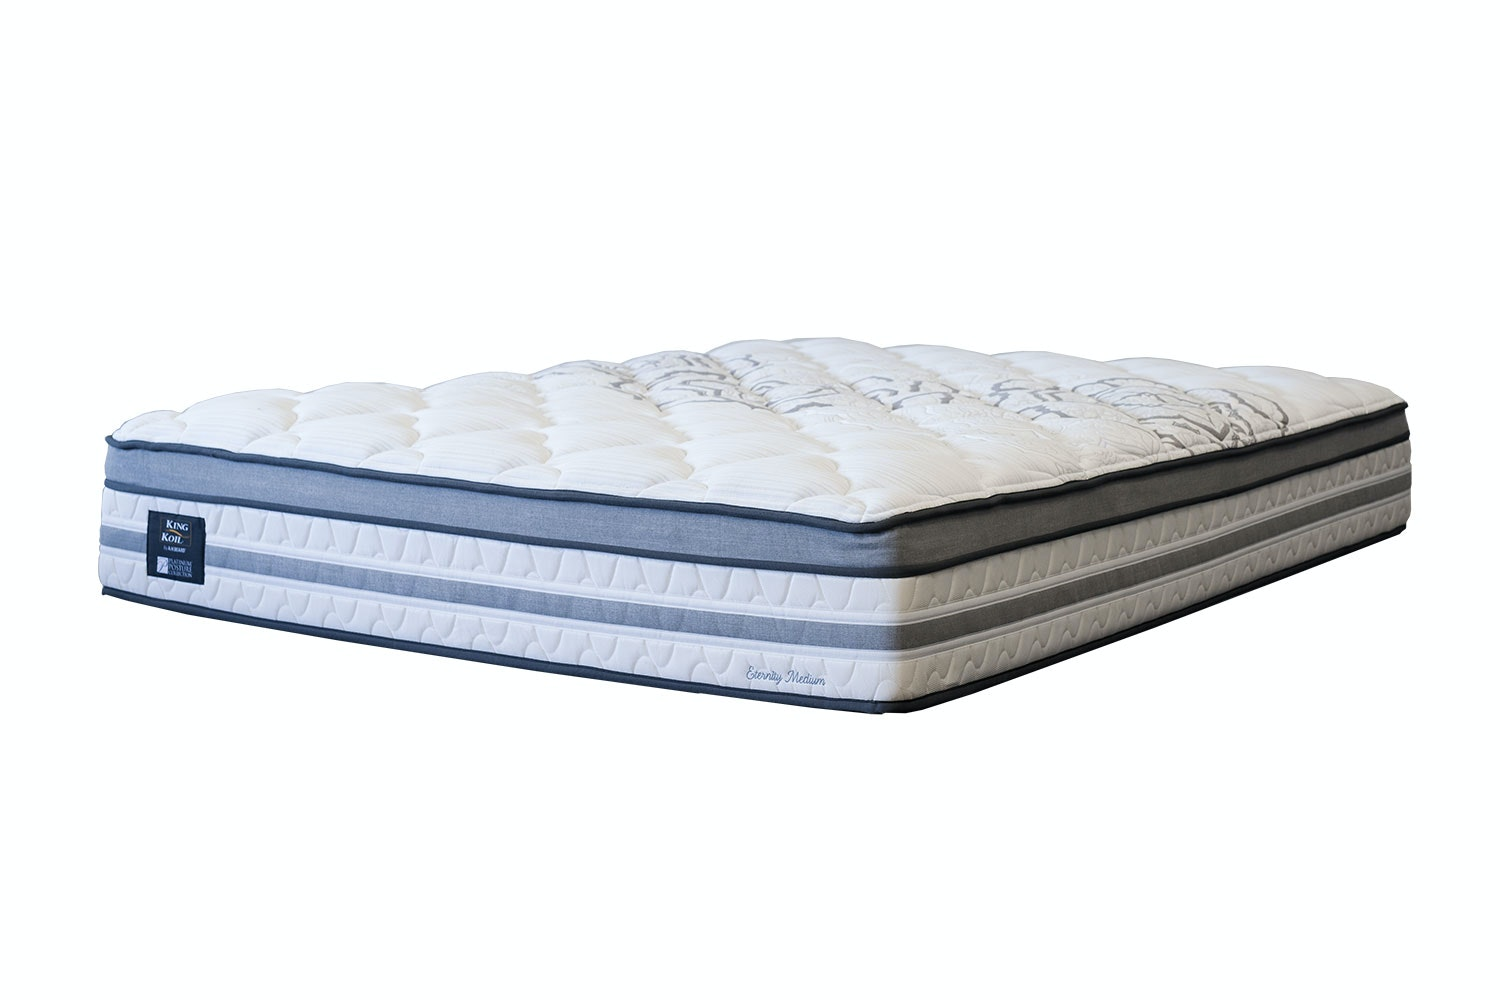 Eternity Medium Double Mattress by King Koil